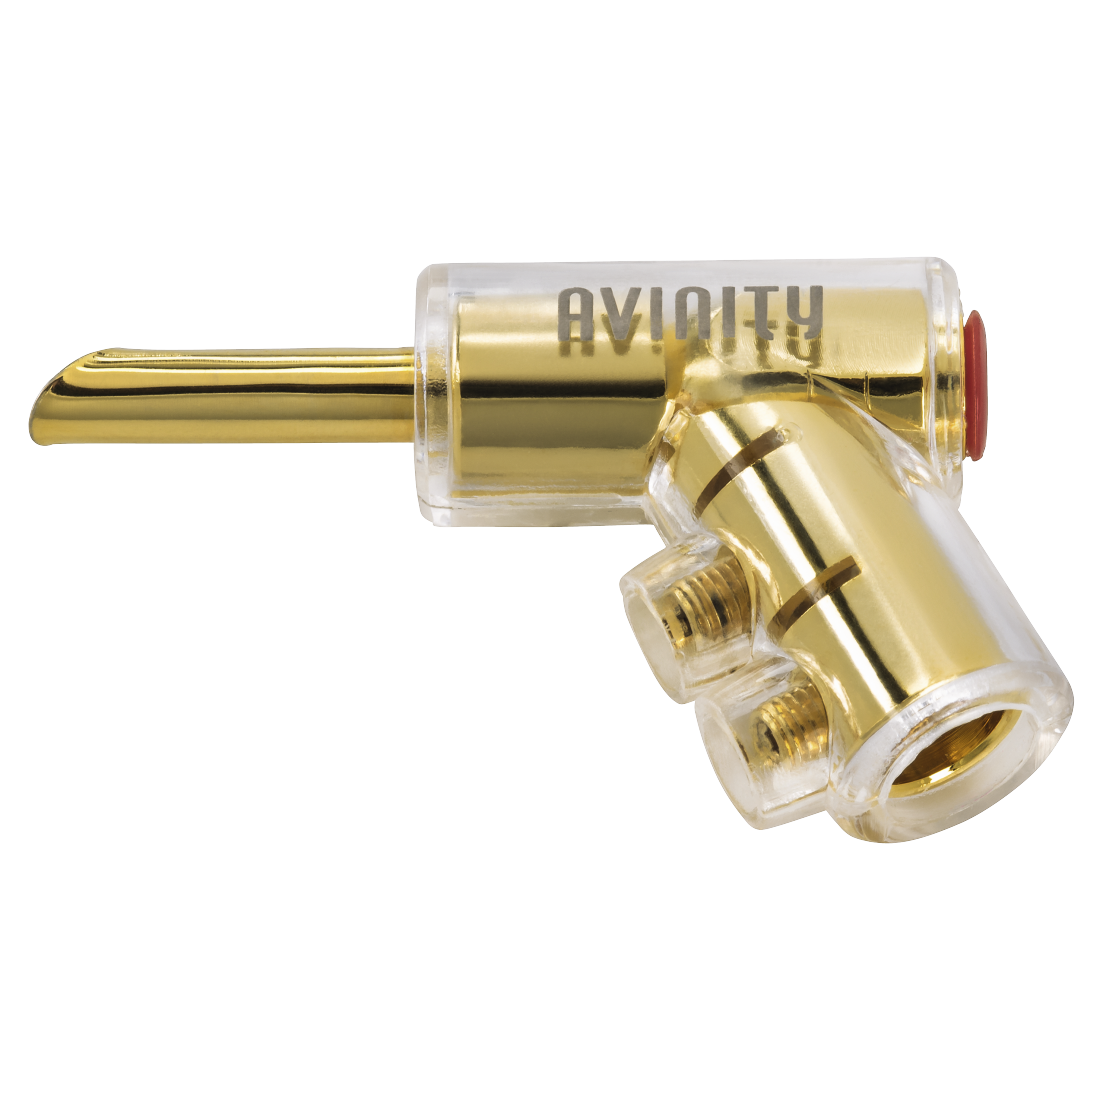 "abx2 High-Res Image 2 - Avinity, ""BC-116"" Banana Plug, gold-plated, set of 4 with Allen Key"